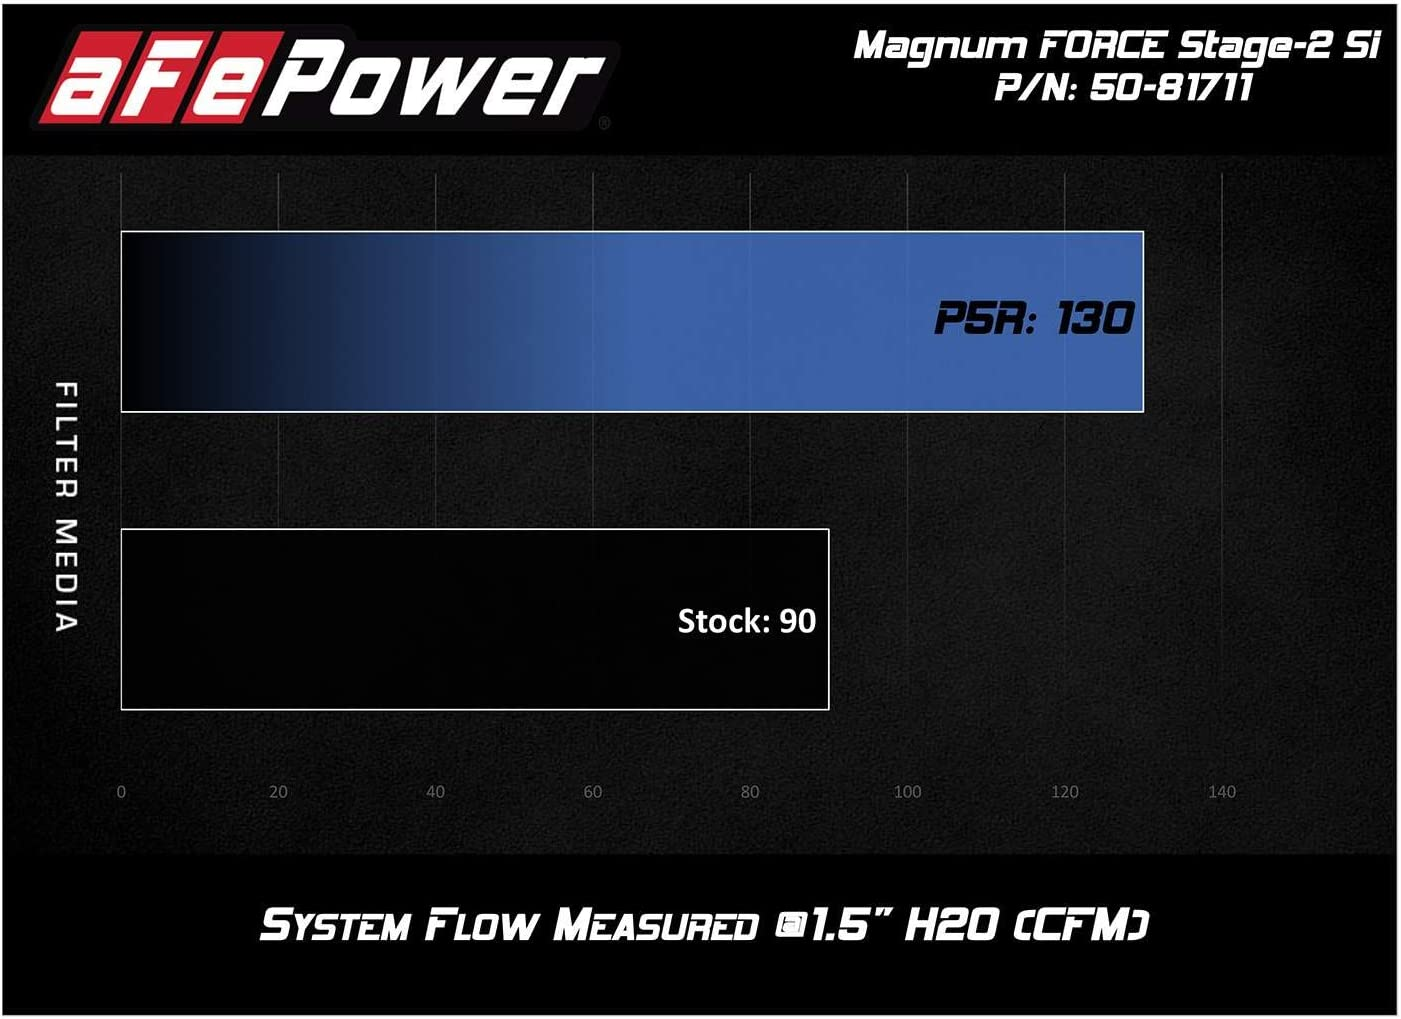 aFe Power 75-81711 Magnum Force Stage 1 Pro Guard 7 Cold Air Intake System for Volkswagen Golf//Jetta L4-2.0L TDI